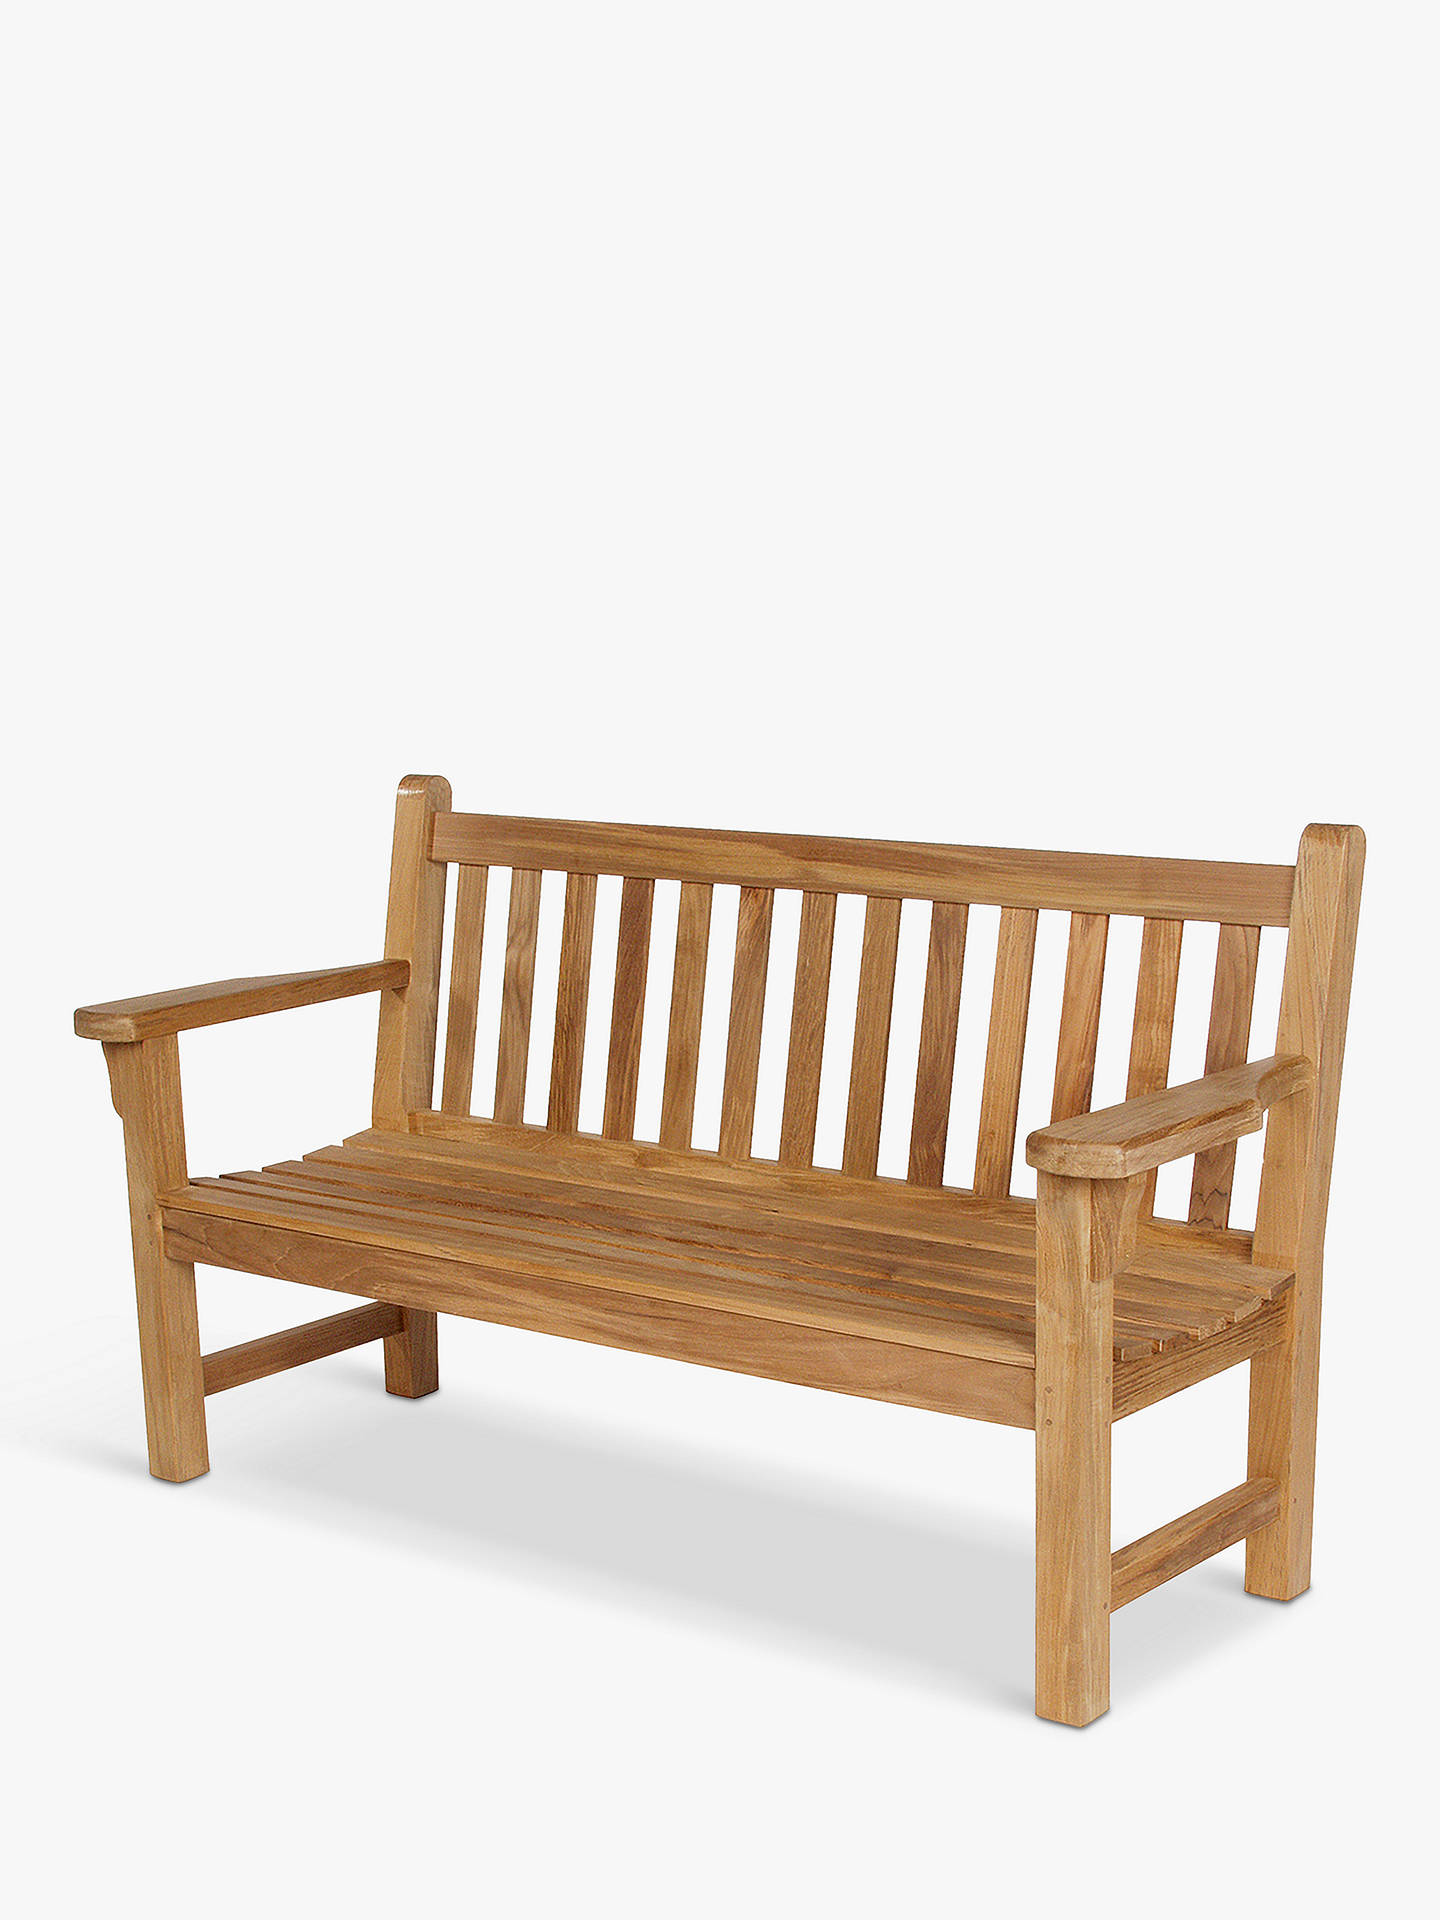 Barlow Tyrie London 3-Seat Garden Bench at John Lewis & Partners